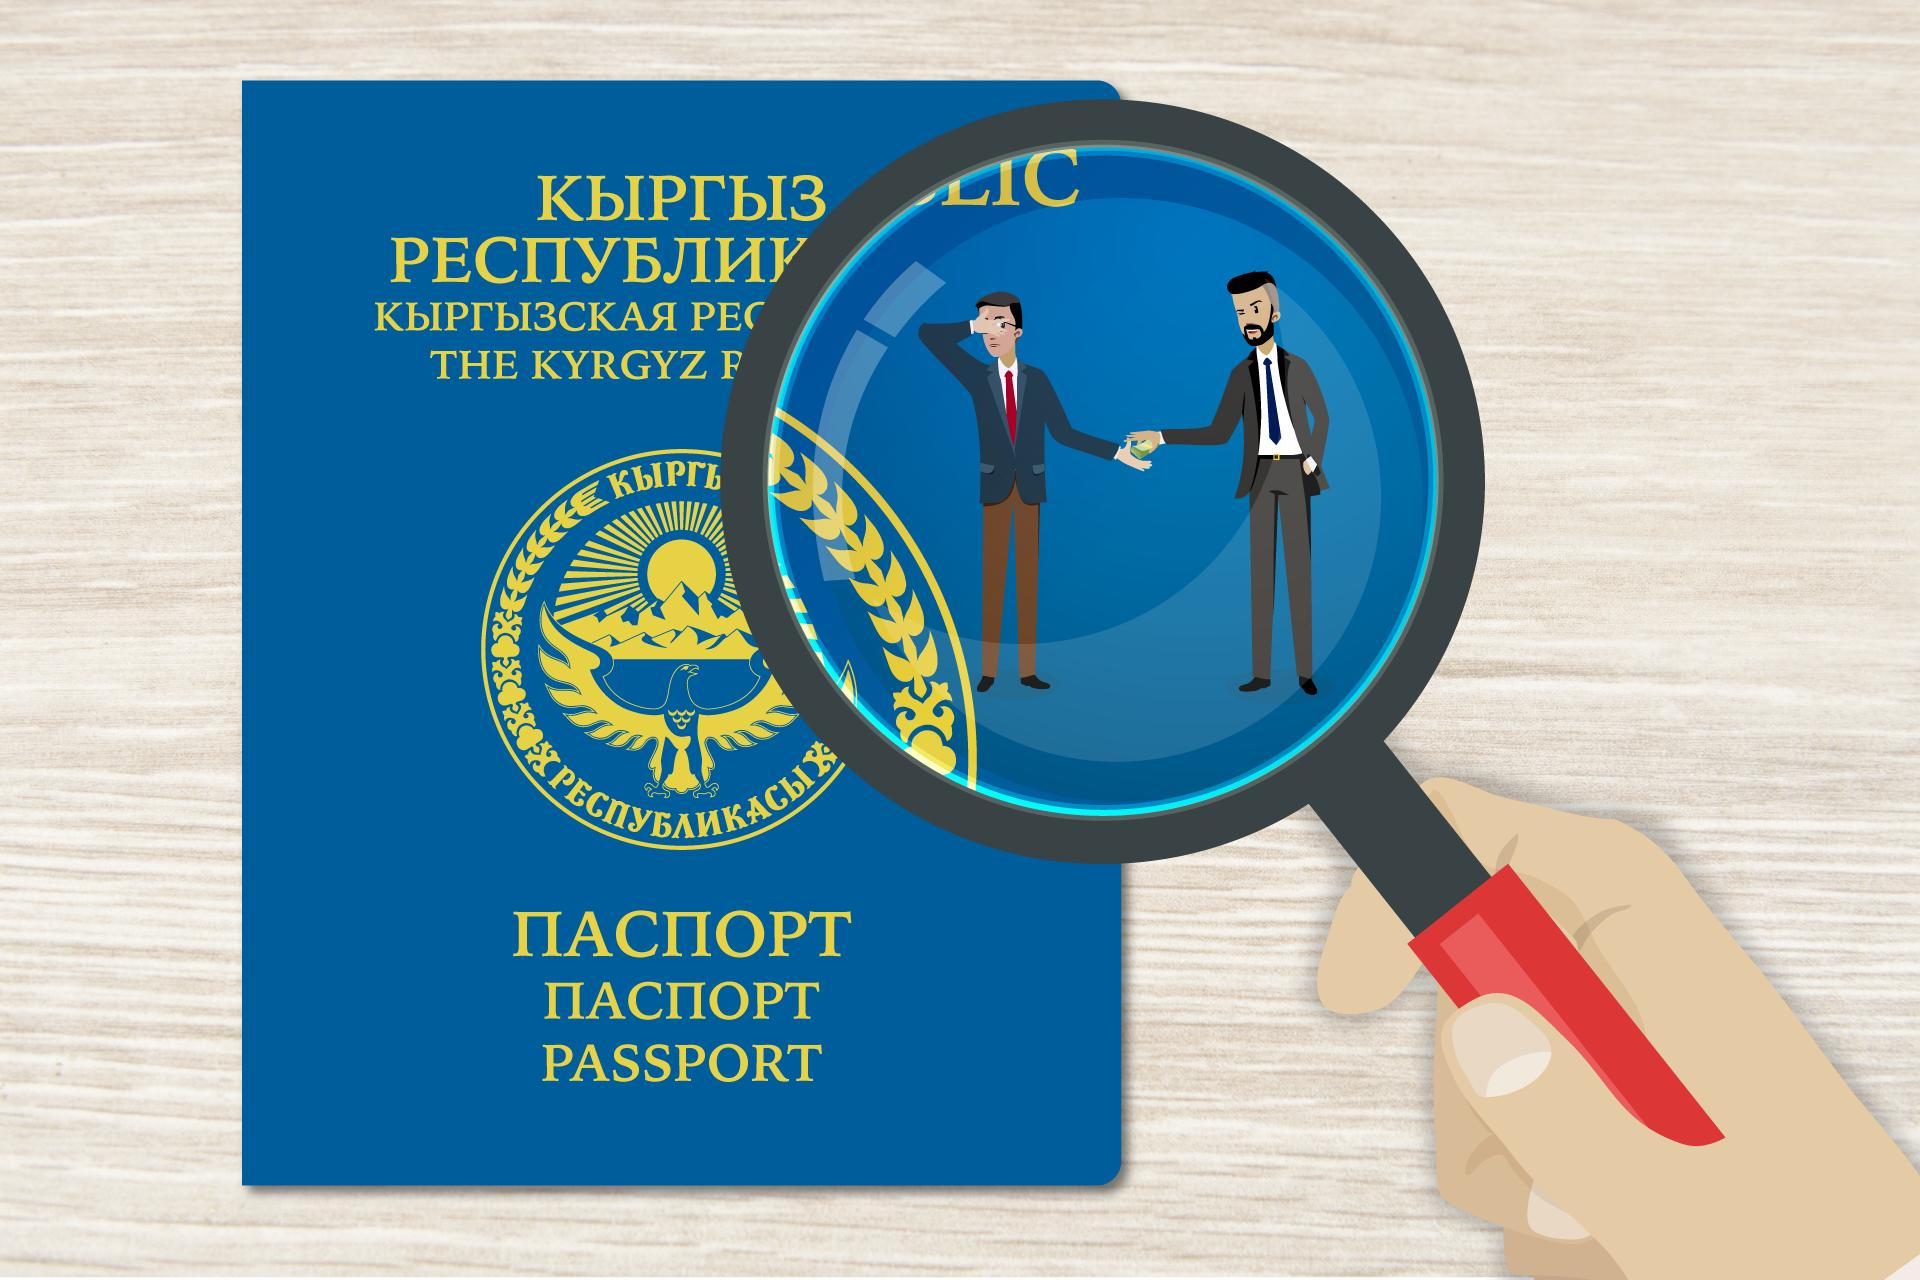 Multimillion Passport Deal Under Investigation in Kyrgyzstan